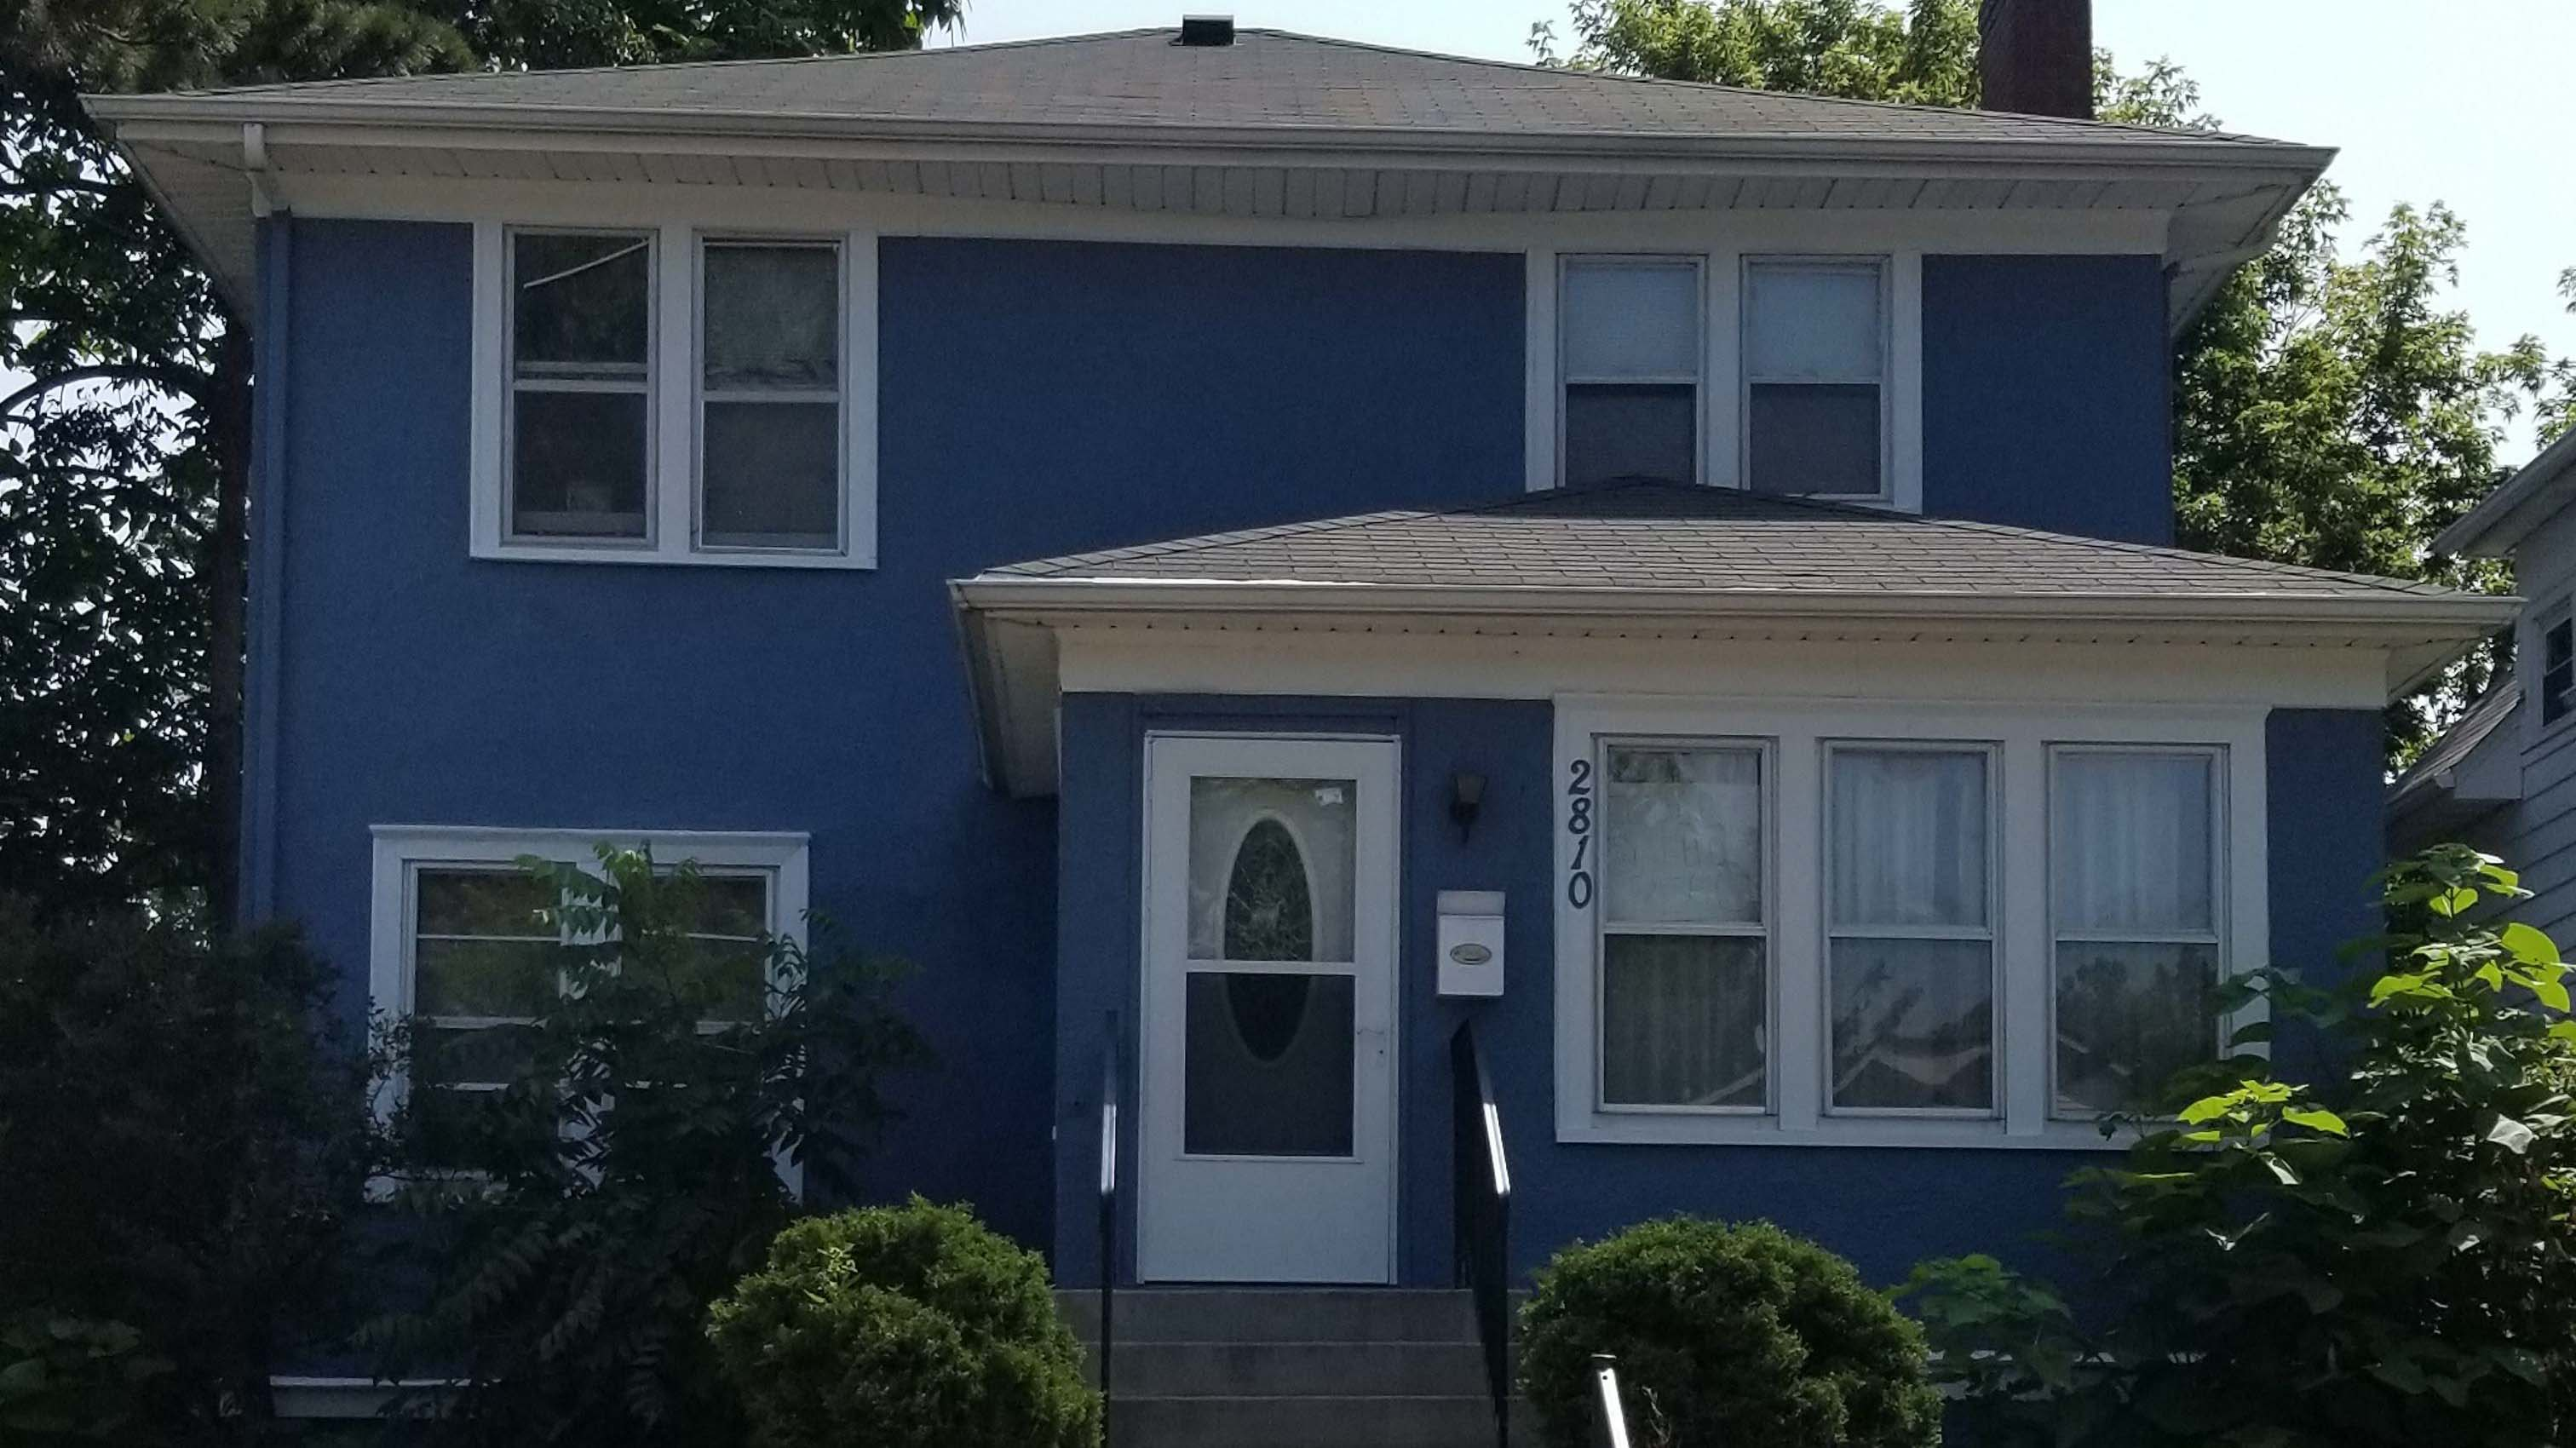 A blue house with a new railing in the front.